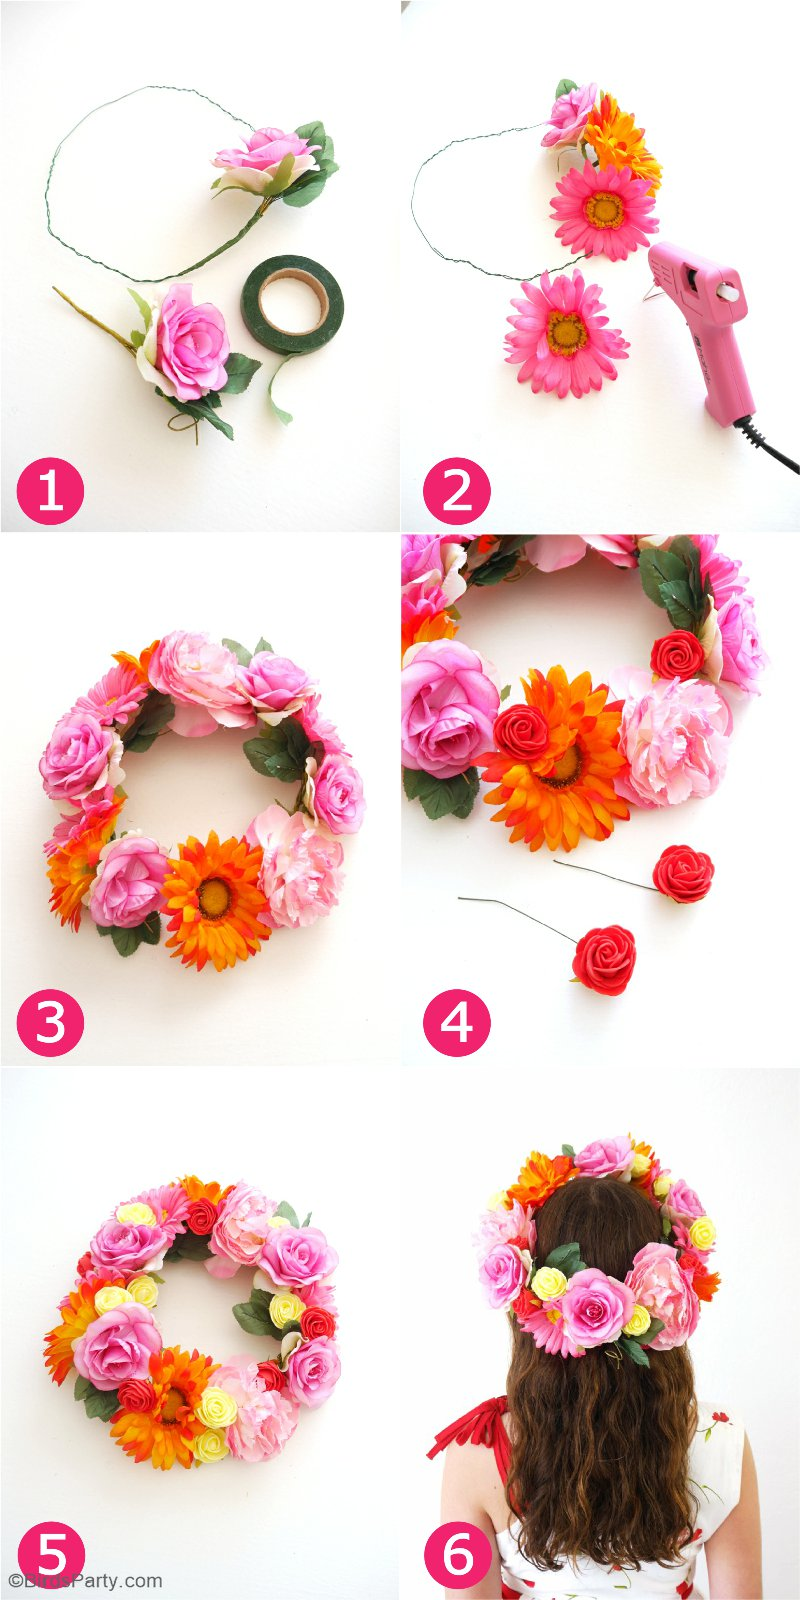 Diy pretty easy flower crowns party ideas party printables blog diy pretty easy flower crowns learn to craft these fashion accessories for your cinco izmirmasajfo